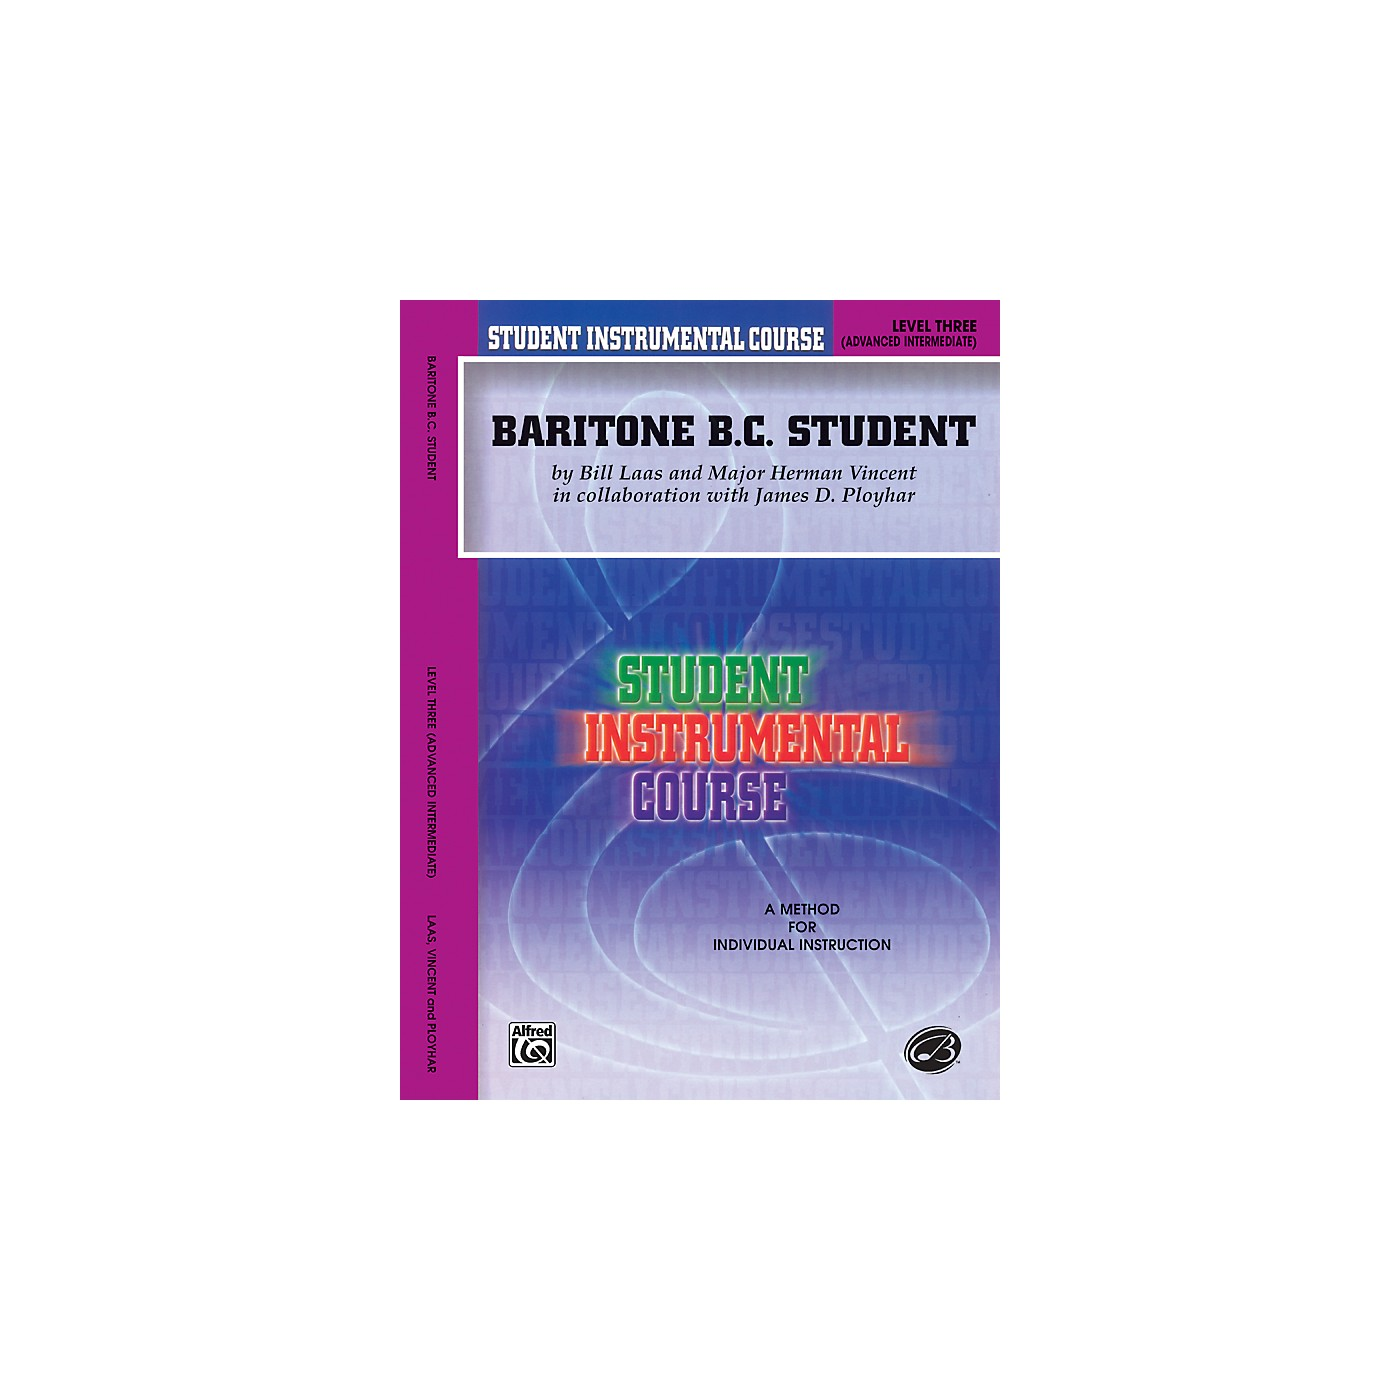 Alfred Student Instrumental Course Baritone (B.C.) Student Level 3 Book thumbnail